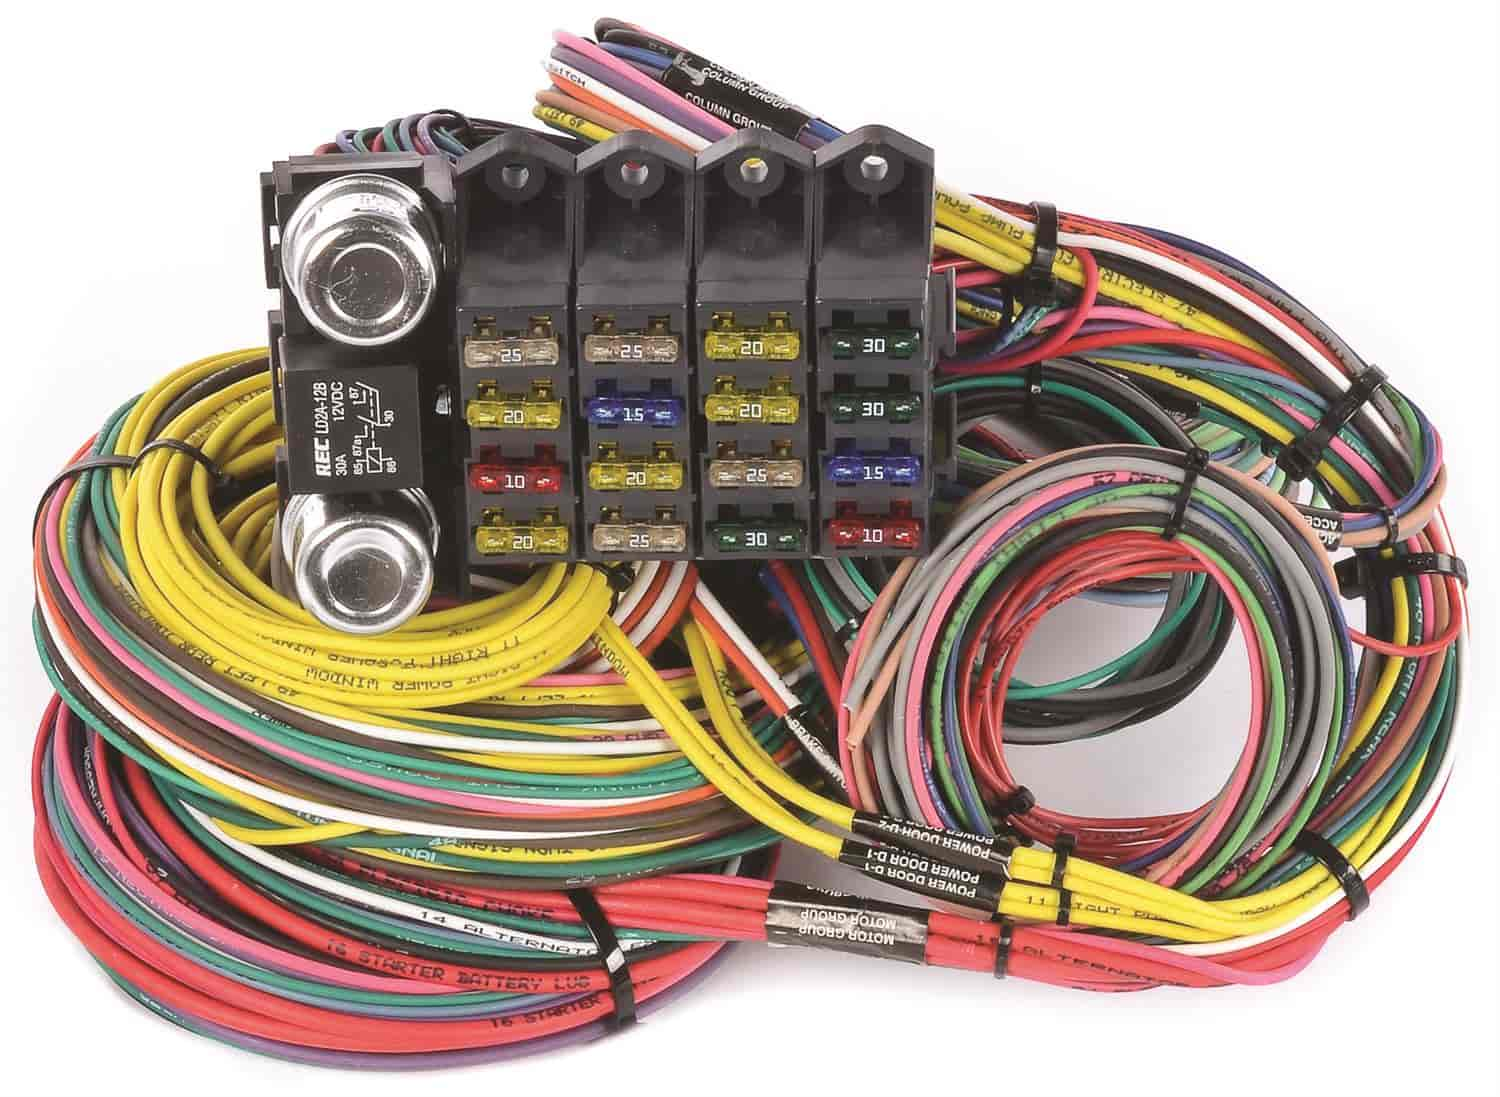 555 10405 jegs performance products 10405 universal wiring harness, 20 GM Turn Signal Wiring at aneh.co